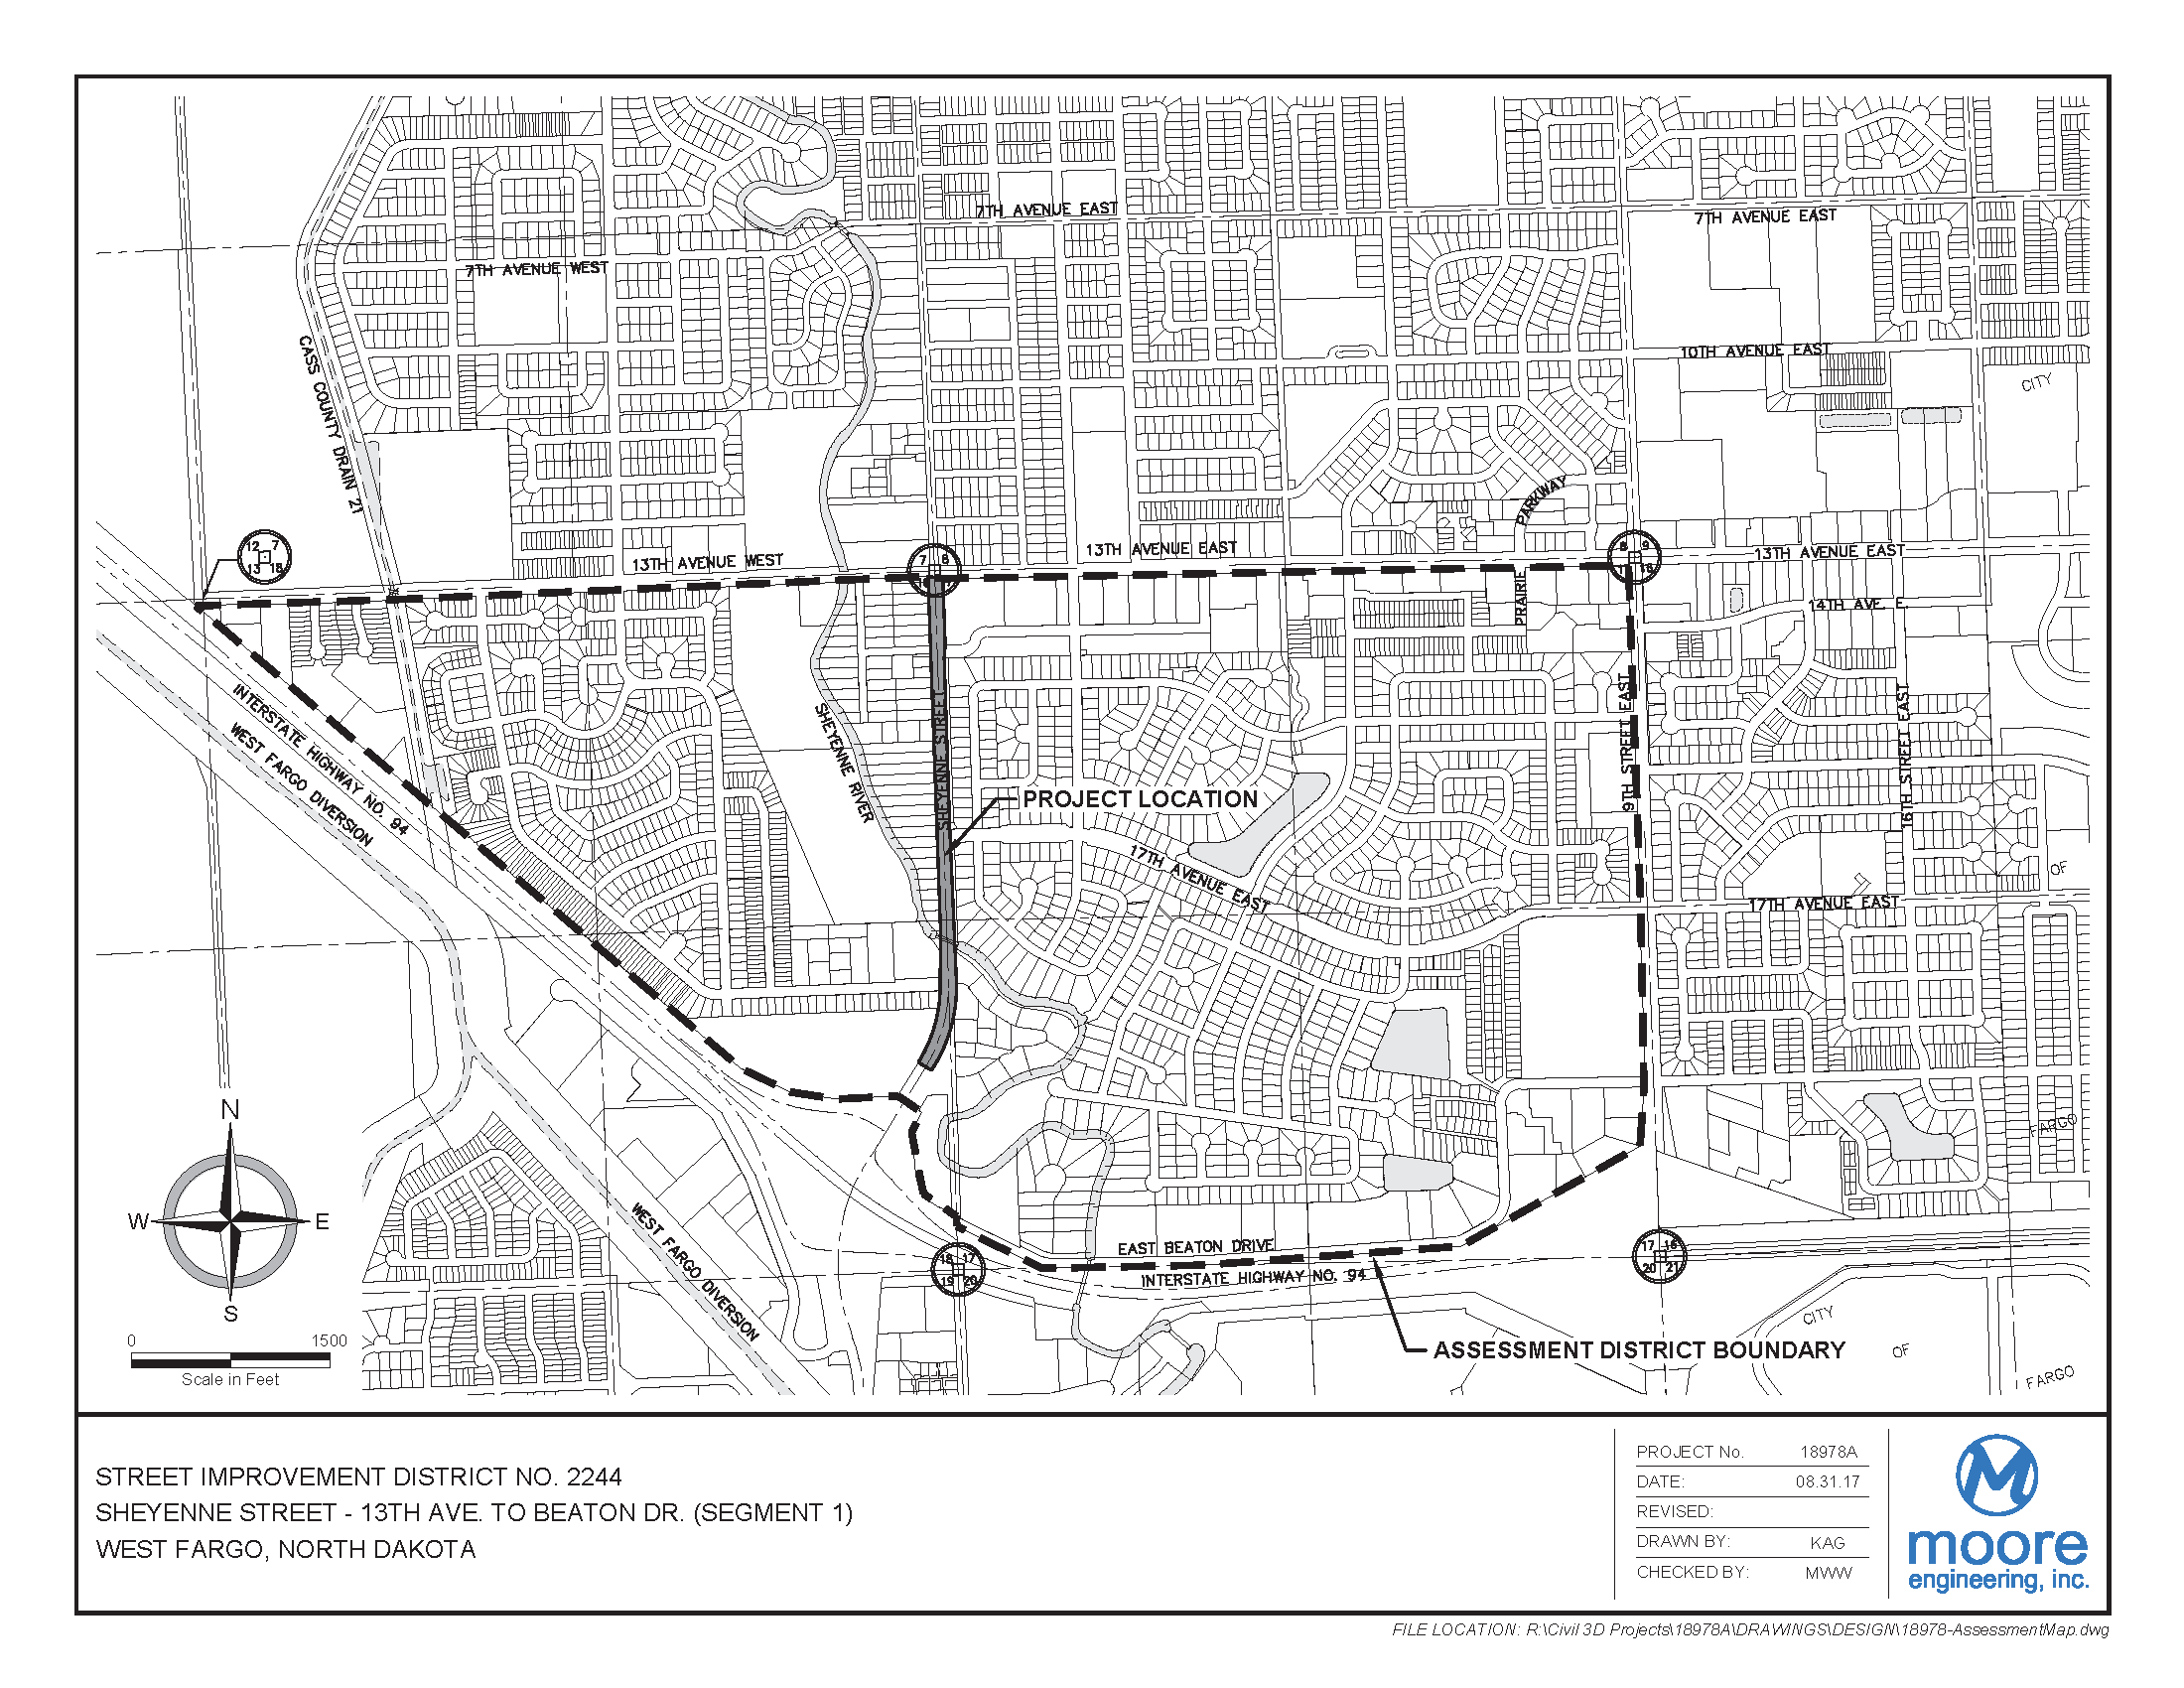 District No. 2244 Sheyenne Street - 13th Avenue W. to Beaton Drive Assessment District Boundary Map